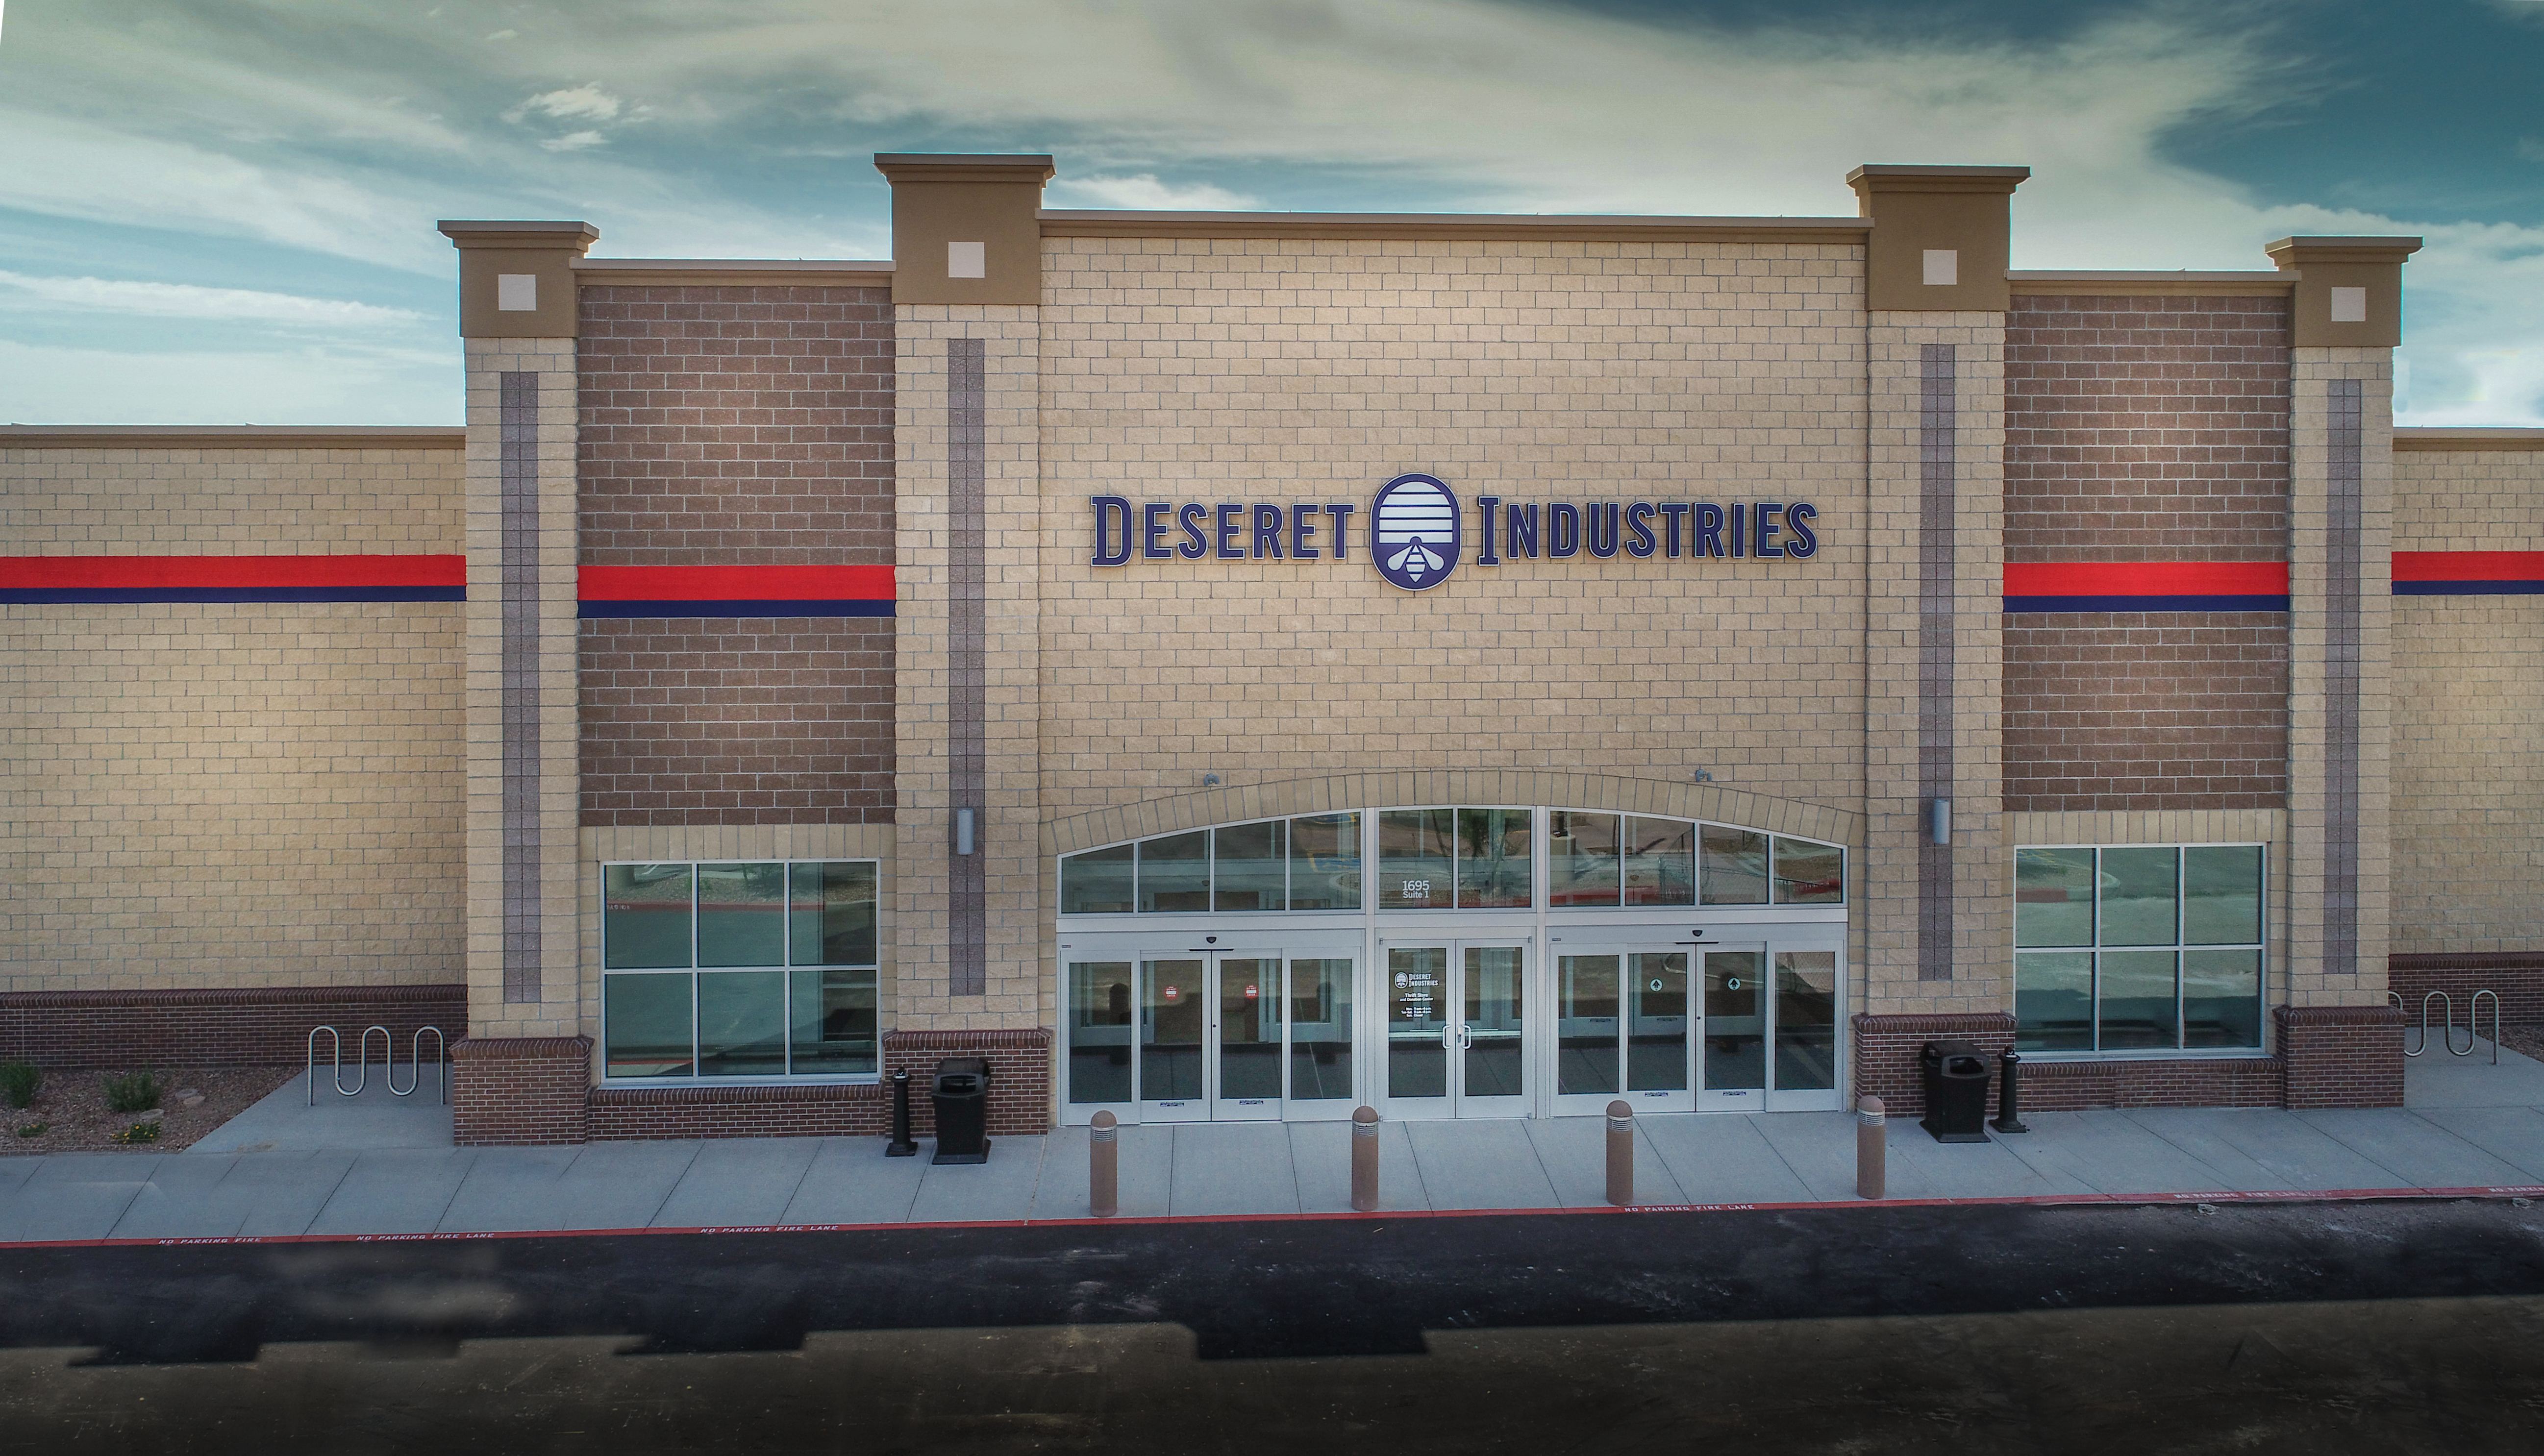 A Reason To Celebrate! Deseret Industries Opens Fourth Arizona Store In Gilbert And Provides Job Training Opportunities To The Community